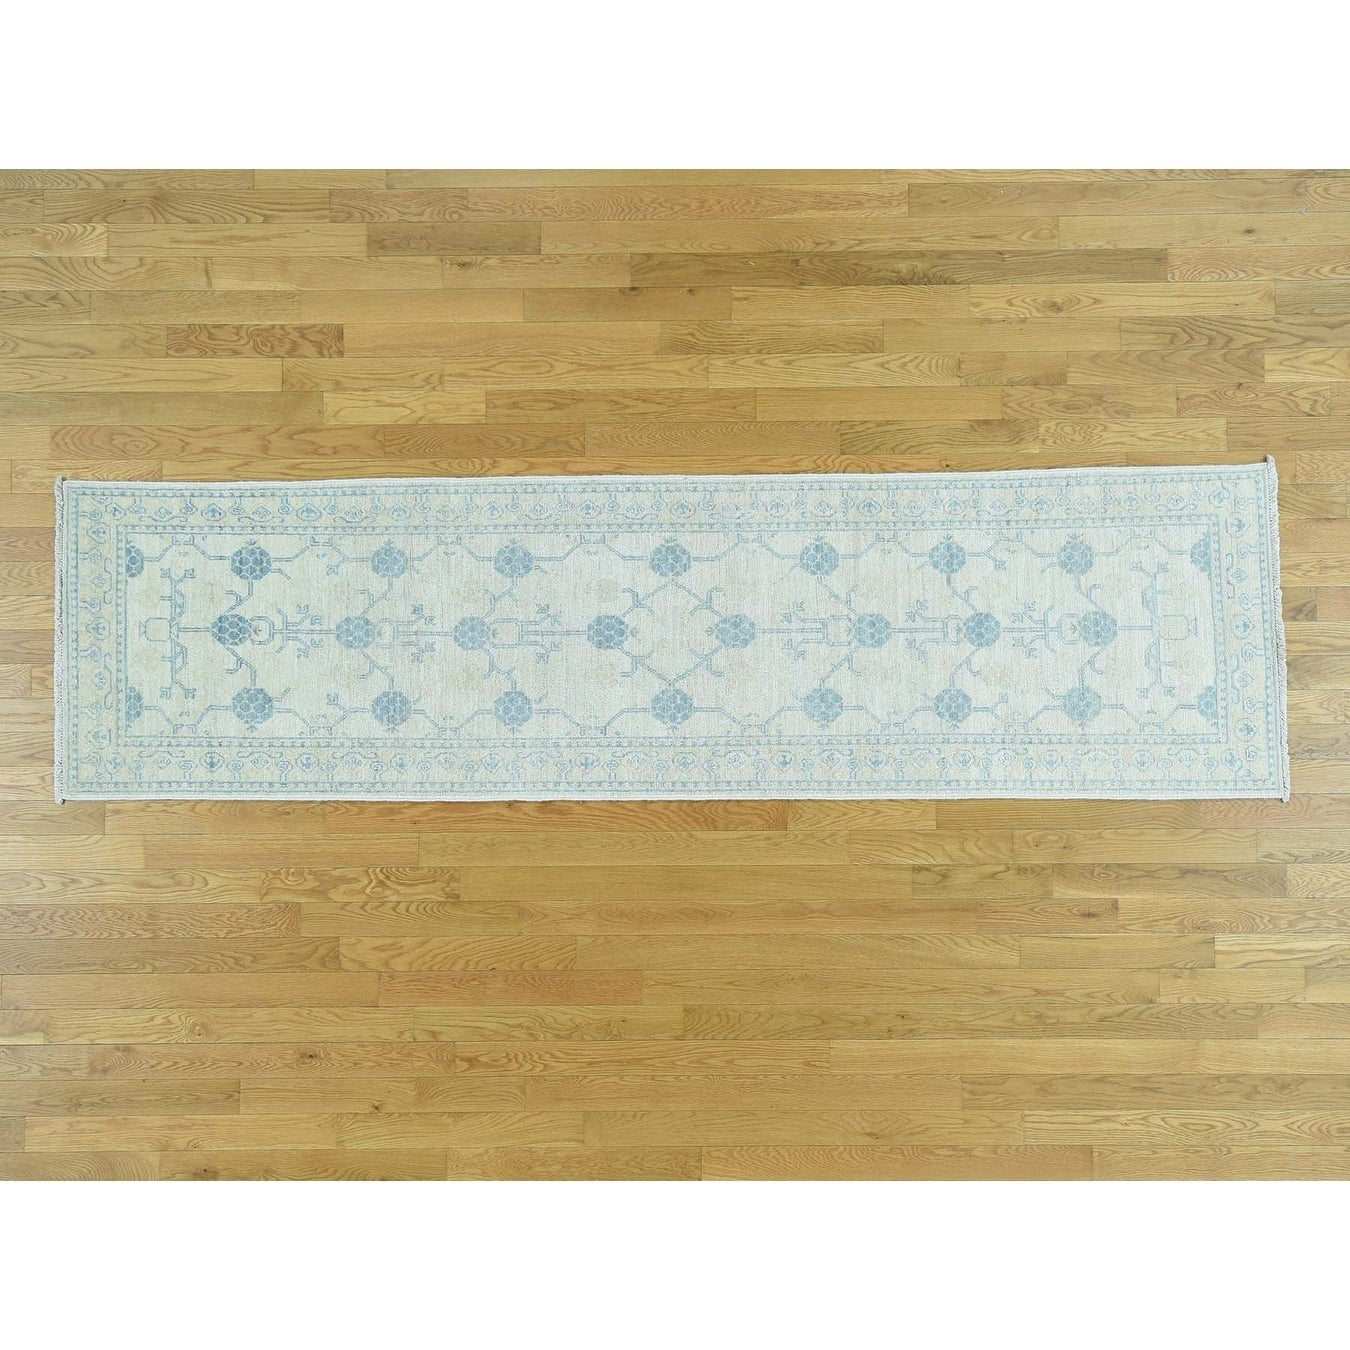 Hand Knotted Ivory Khotan and Samarkand with Wool Oriental Rug - 27 x 98